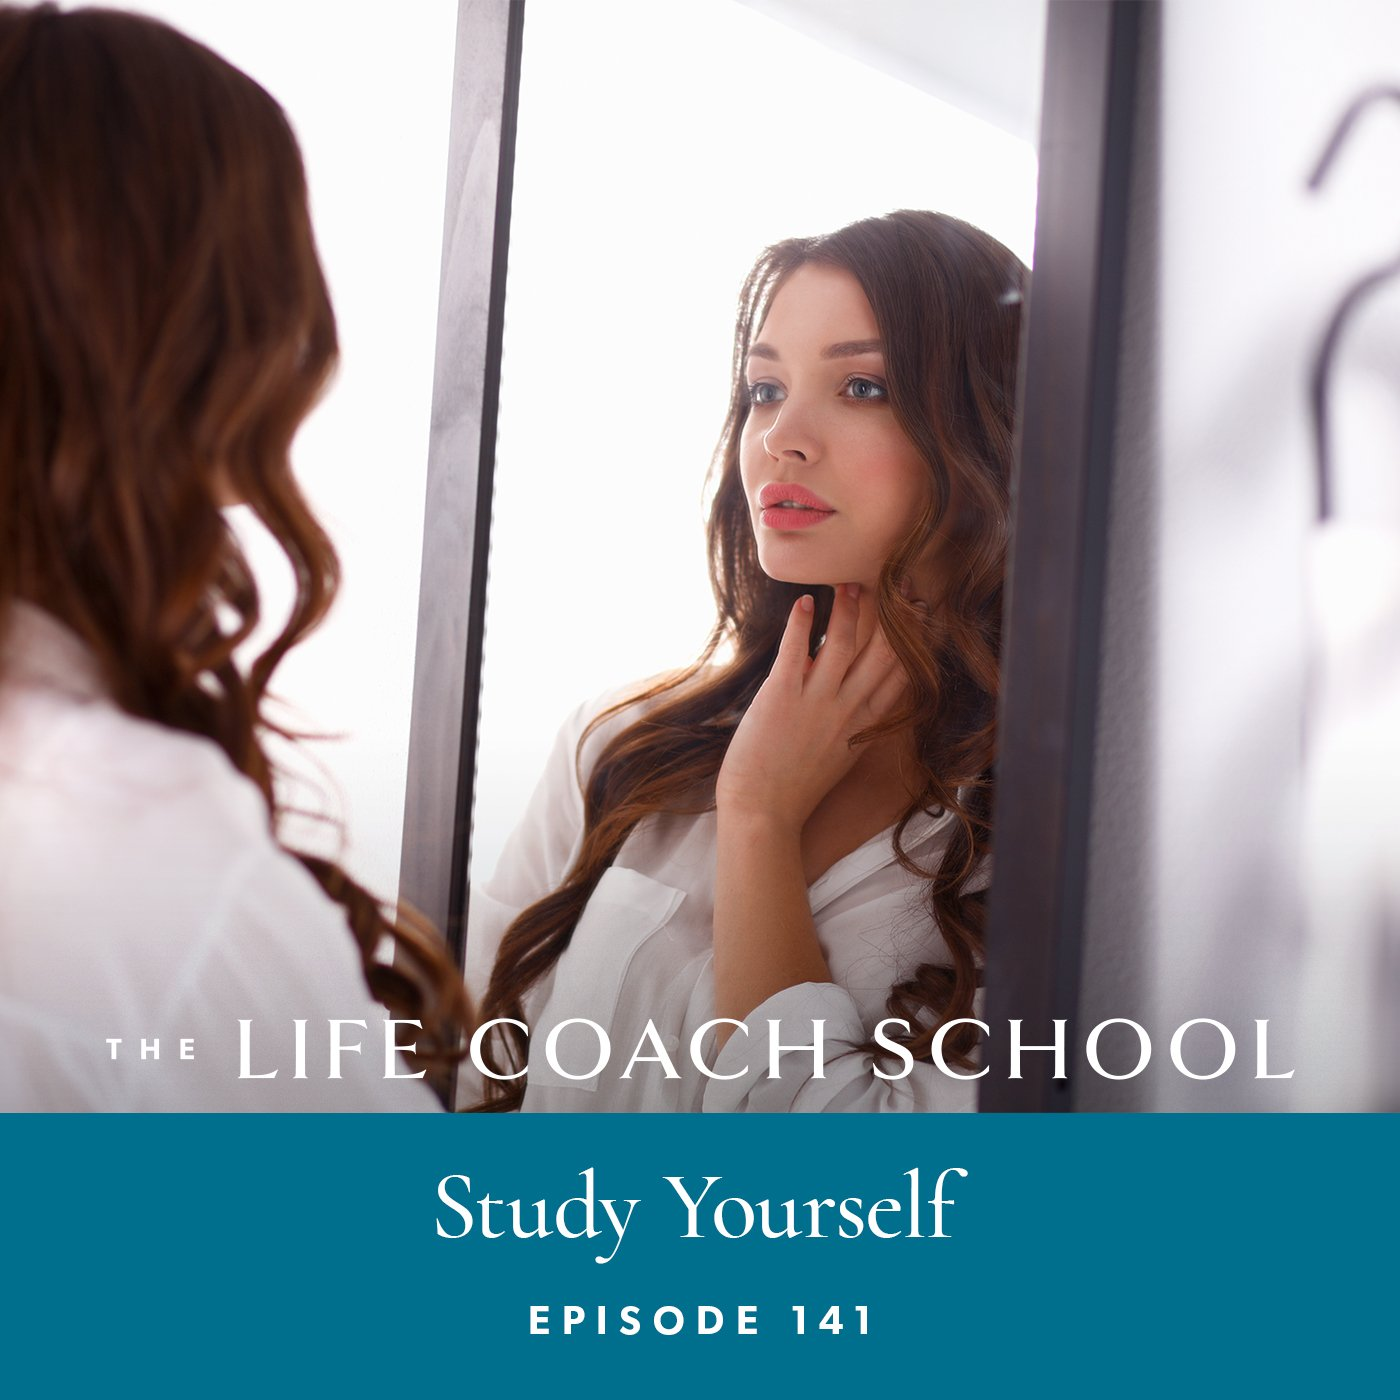 The Life Coach School Podcast with Brooke Castillo | Episode 141 | Study Yourself